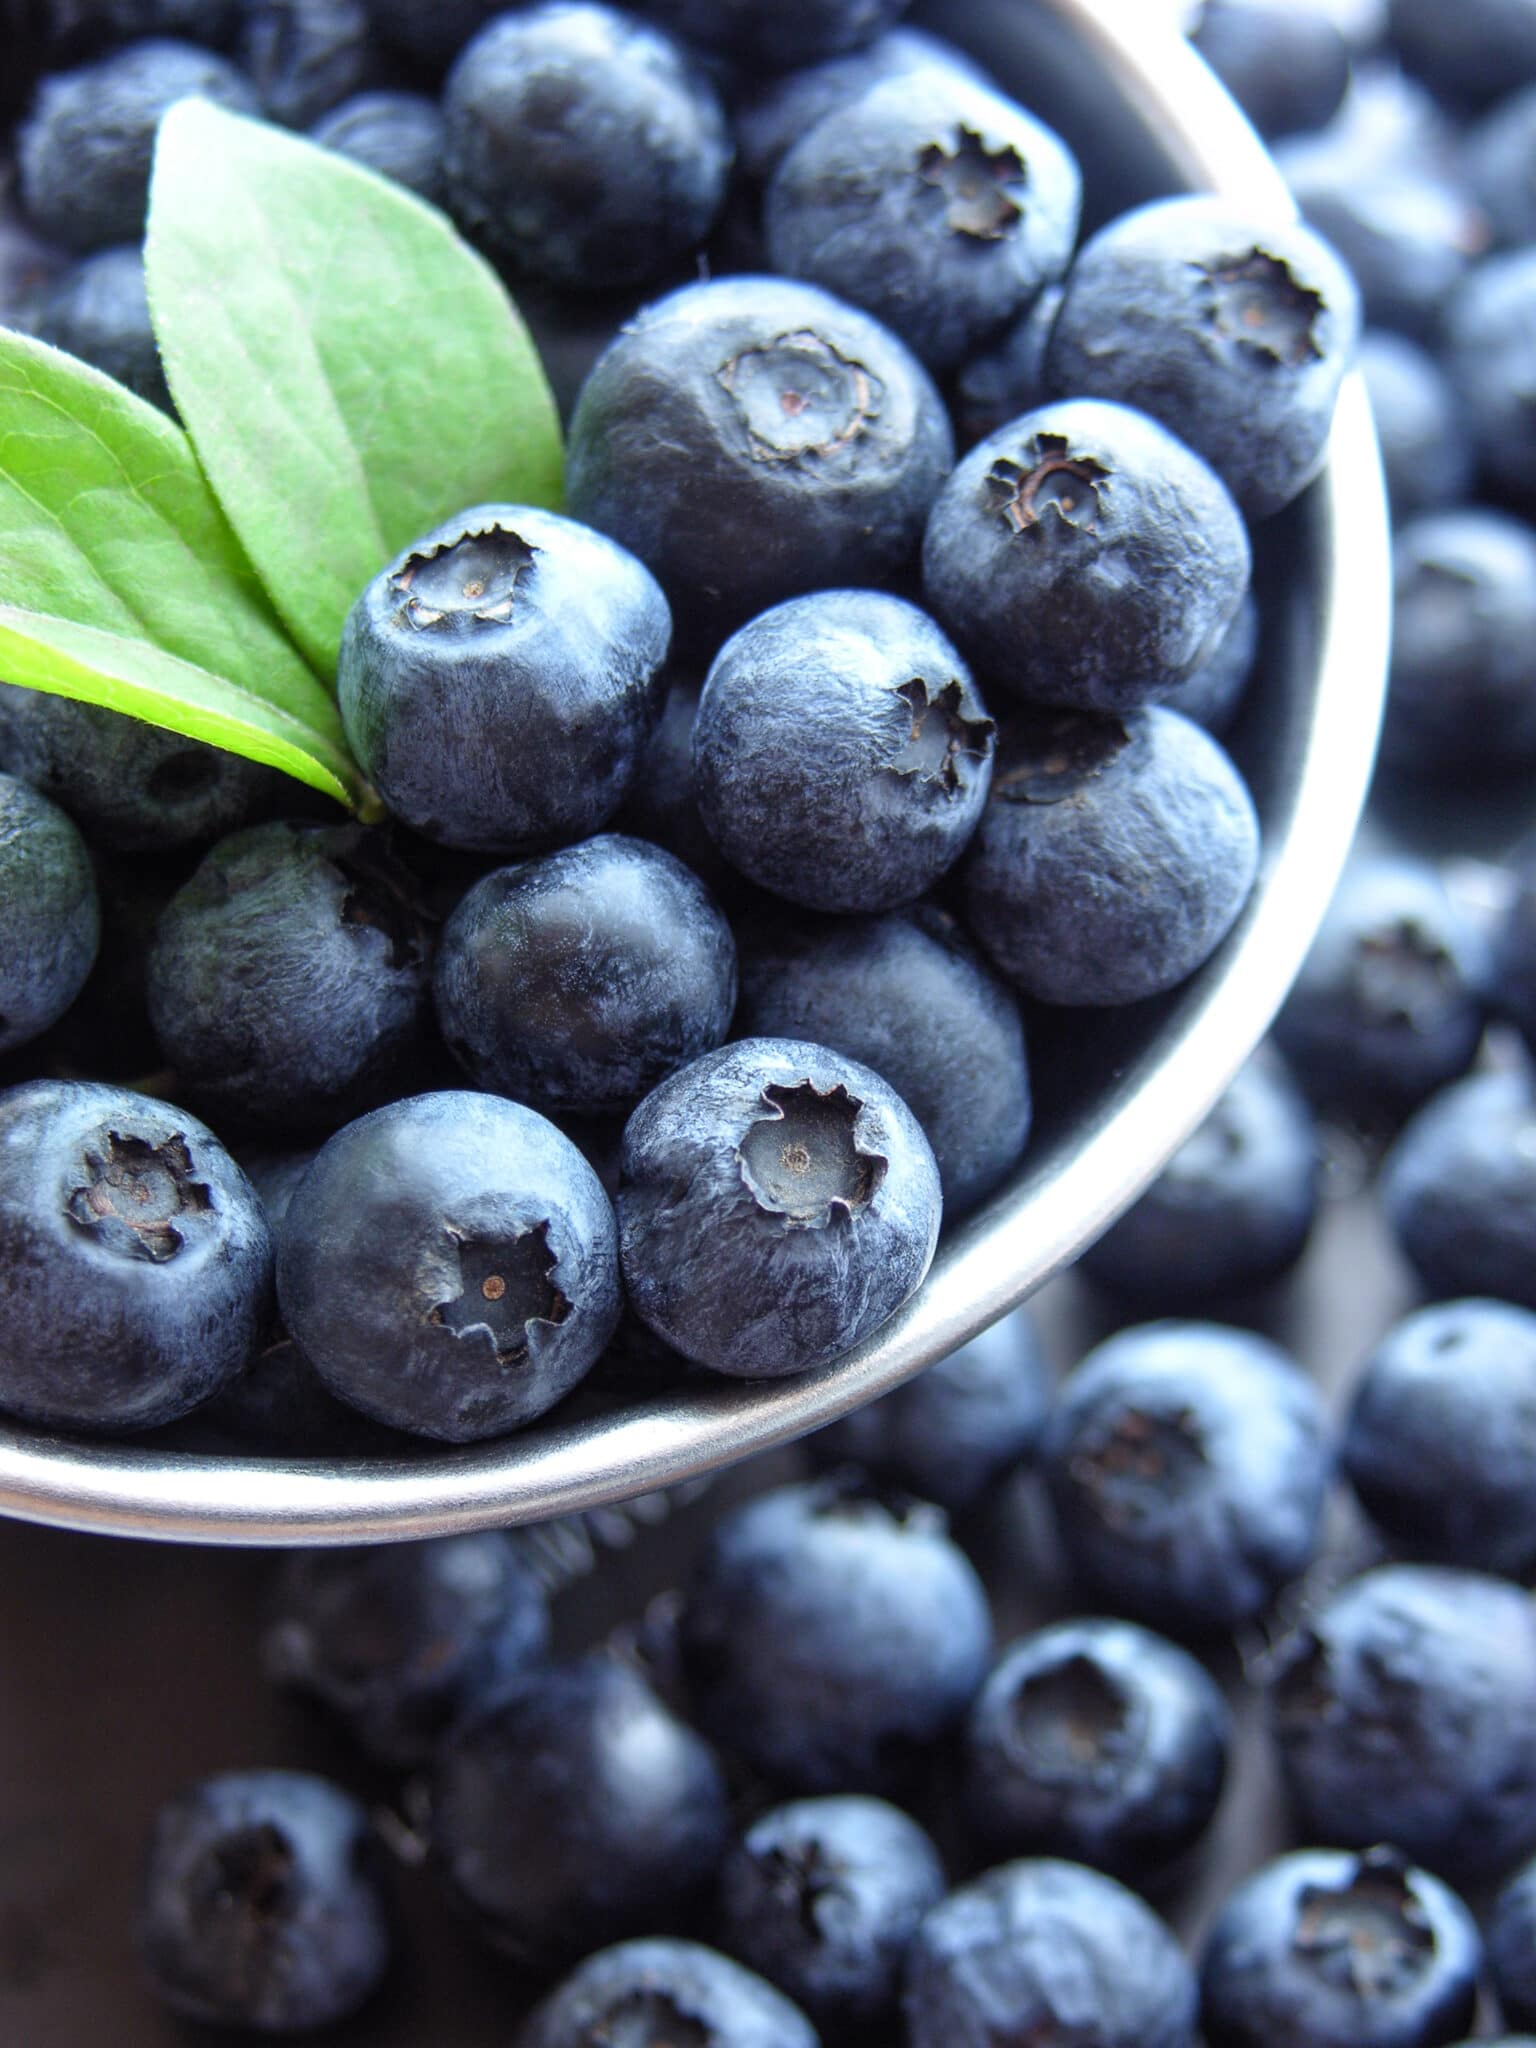 A pot filled with ripe freshly picked blueberries.